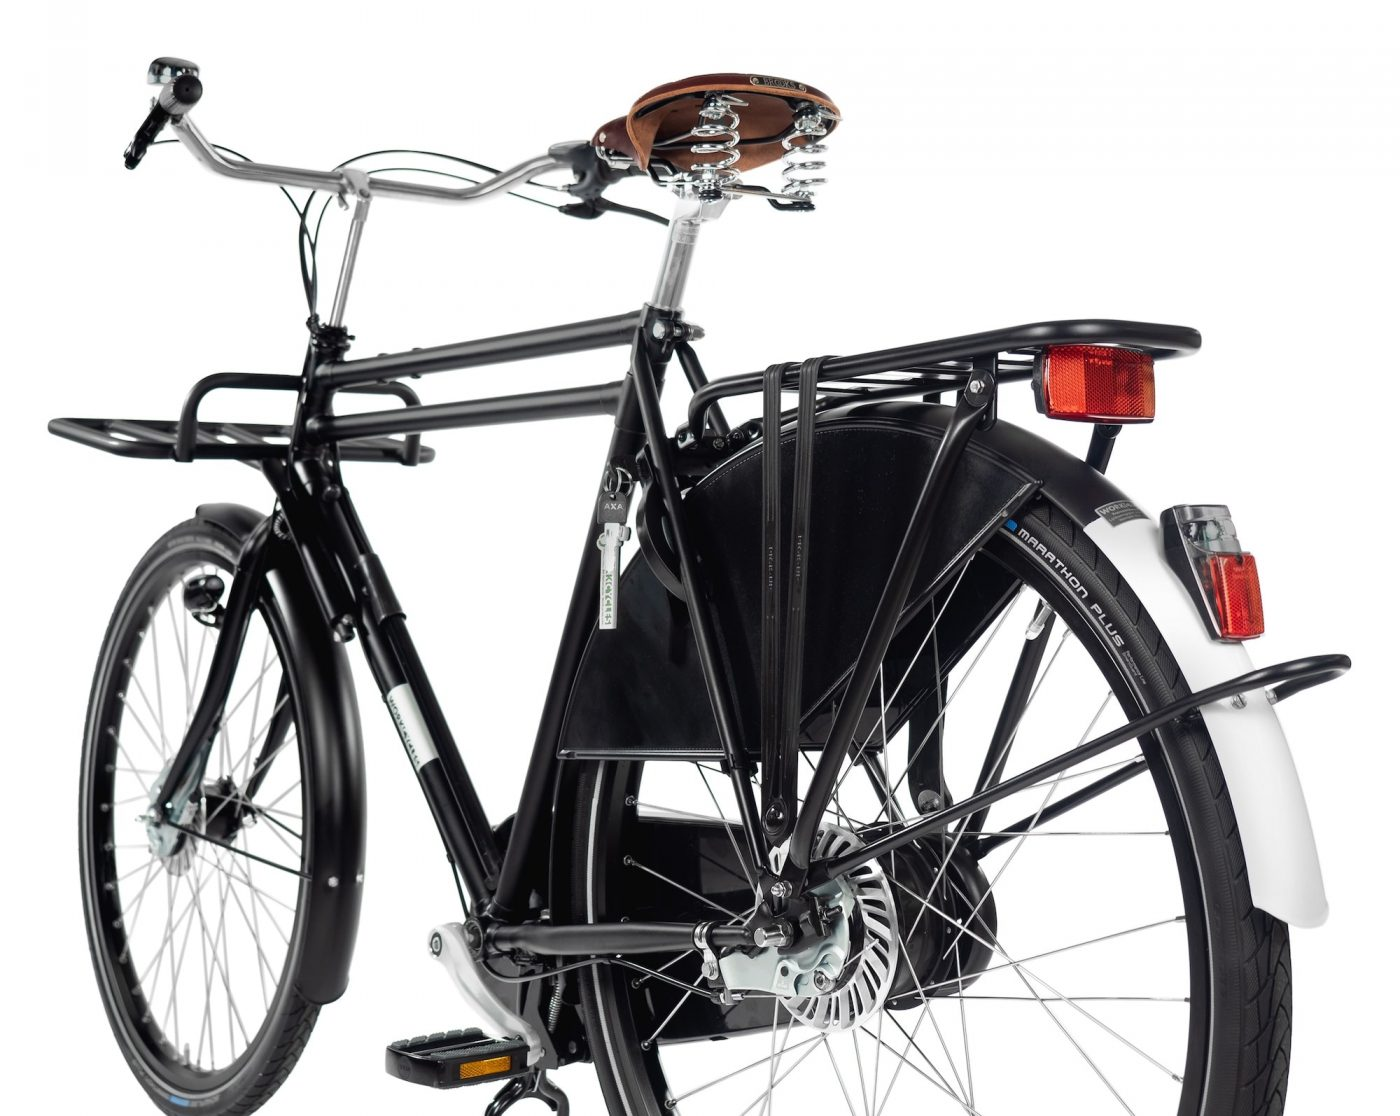 Combining strength and looks, the WorkCycles Double Tube Transport is a modern vehicle built for maximum utility.